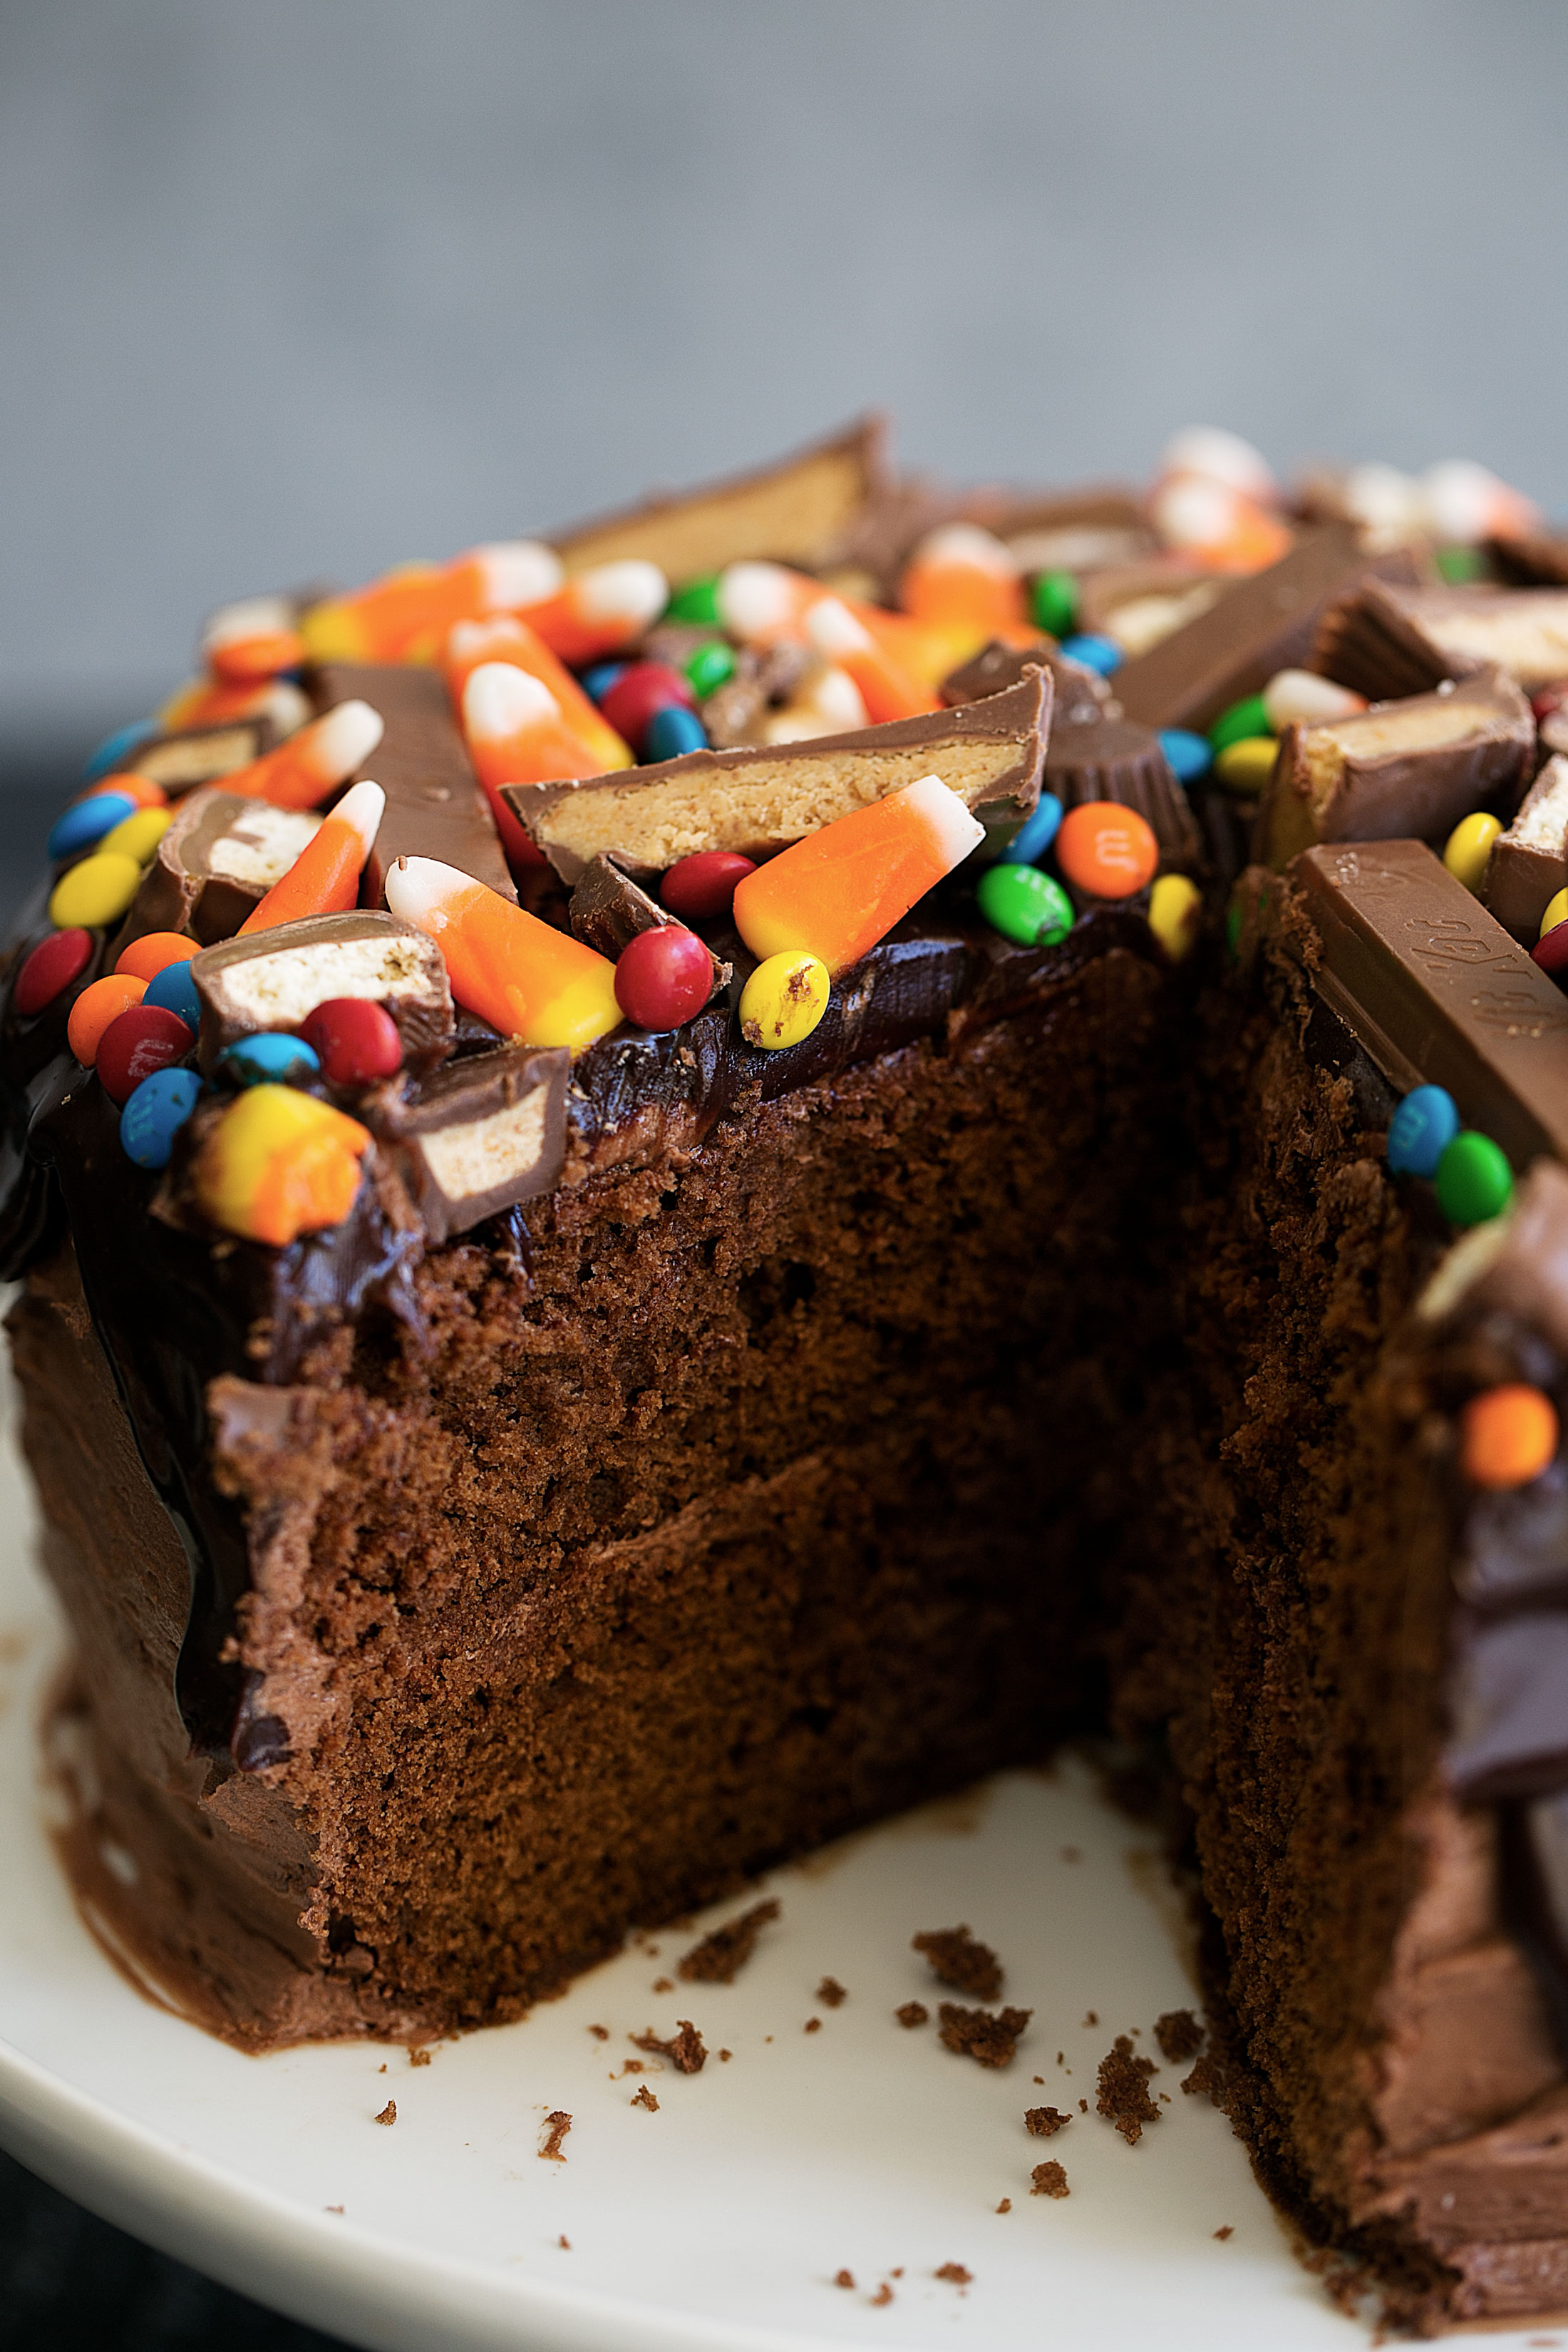 Chocolate Cake with Chocolate Ganache & Halloween Candy cut cake